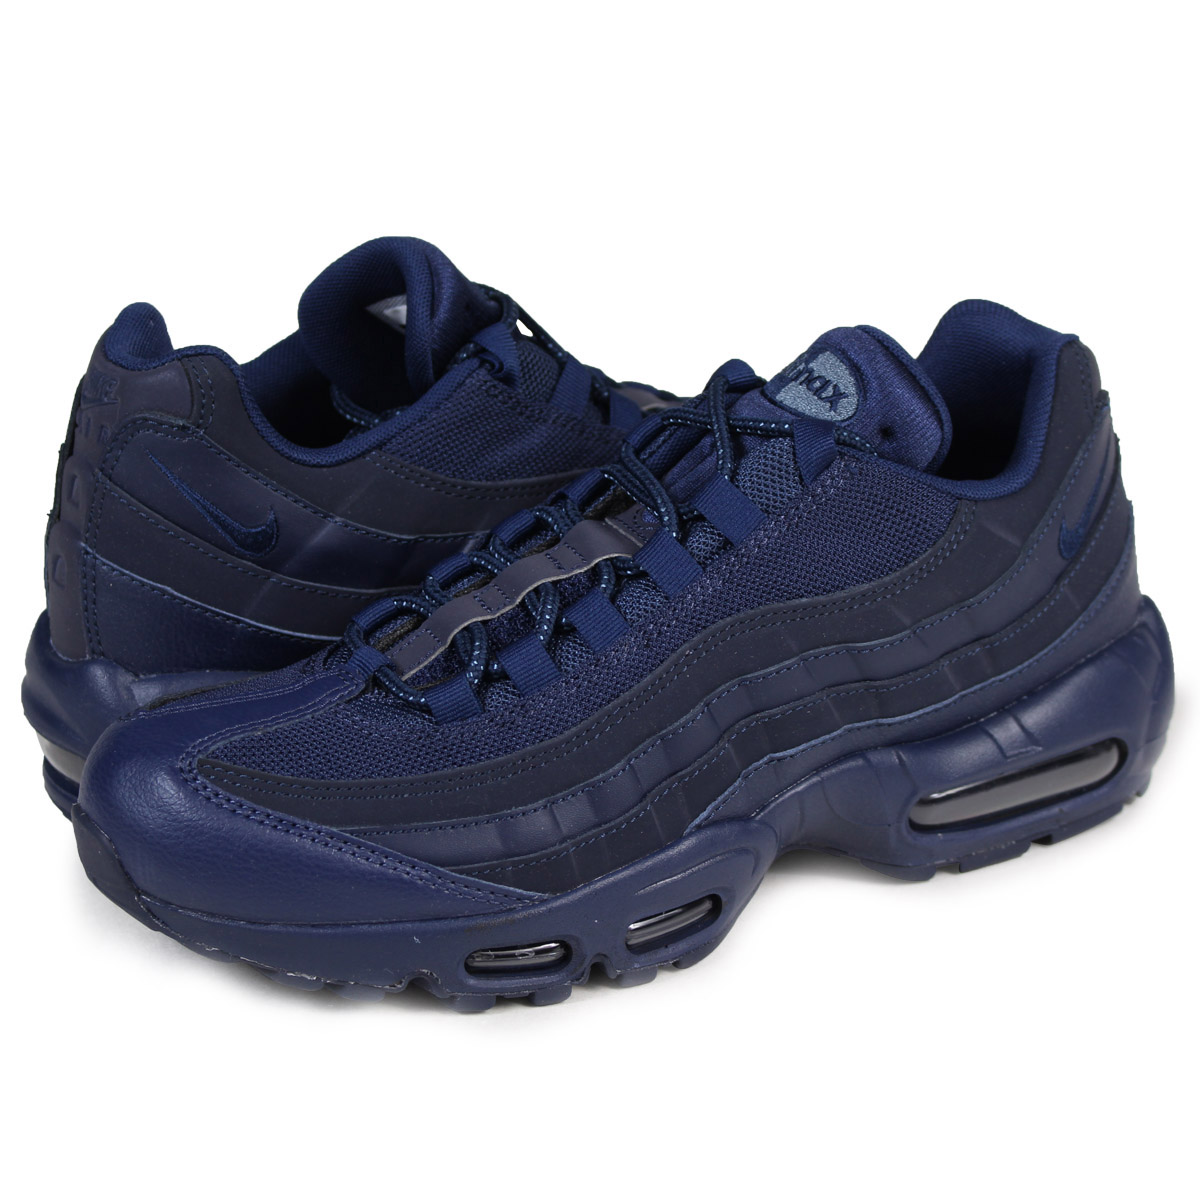 best sneakers 65fbe 08791 NIKE AIR MAX 95 ESSENTIAL Kie Ney AMAX 95 essential sneakers 749,766-407  men s shoes ...